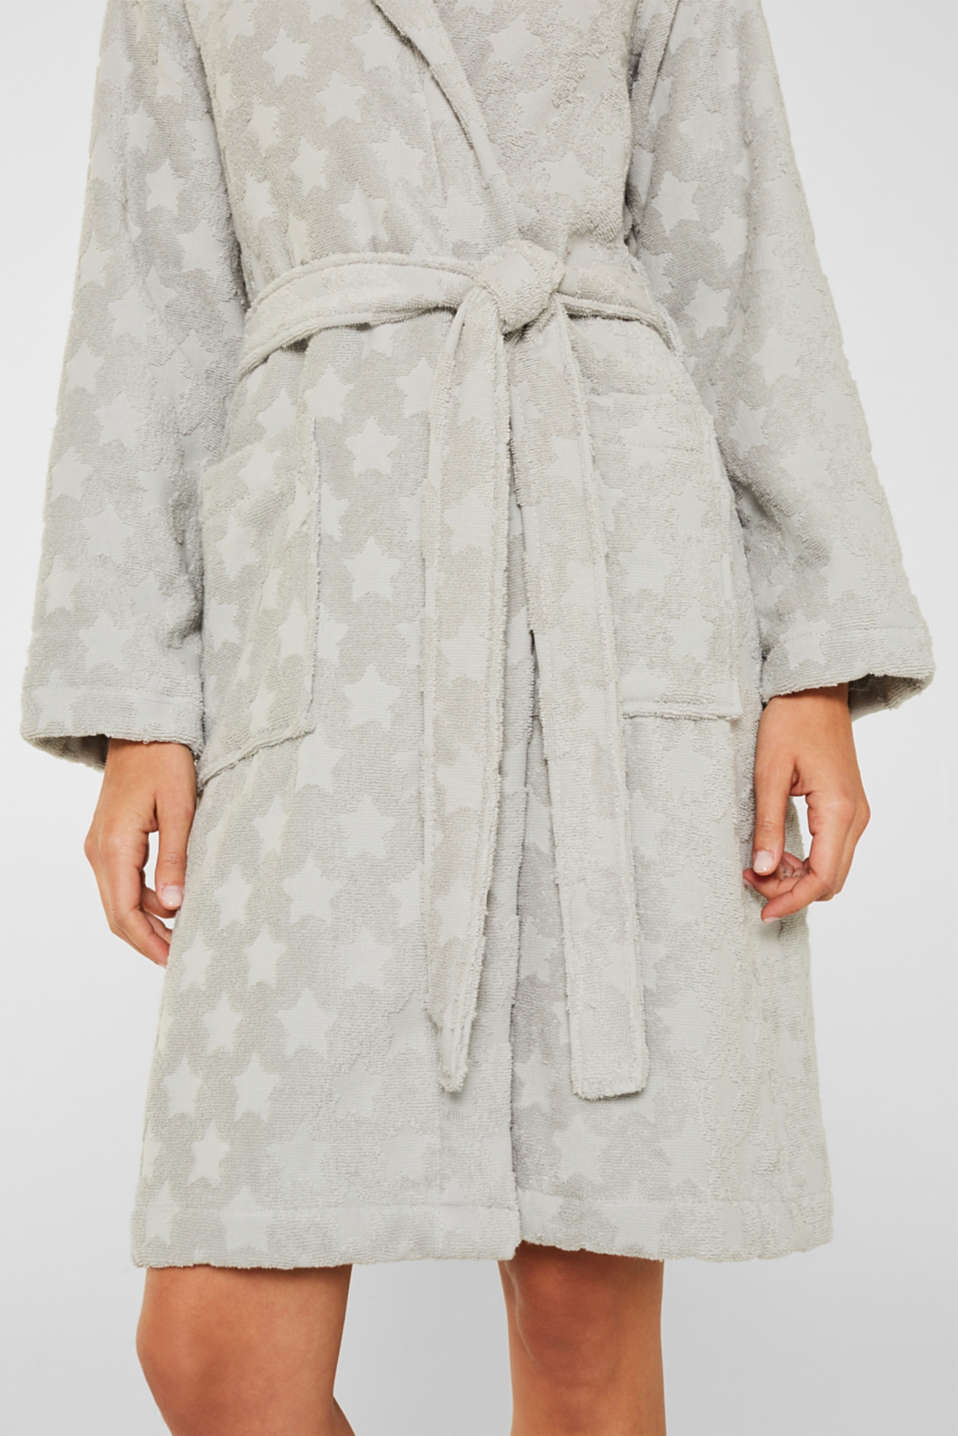 Bathrobe with star intarsia, 100% cotton, STONE, detail image number 2